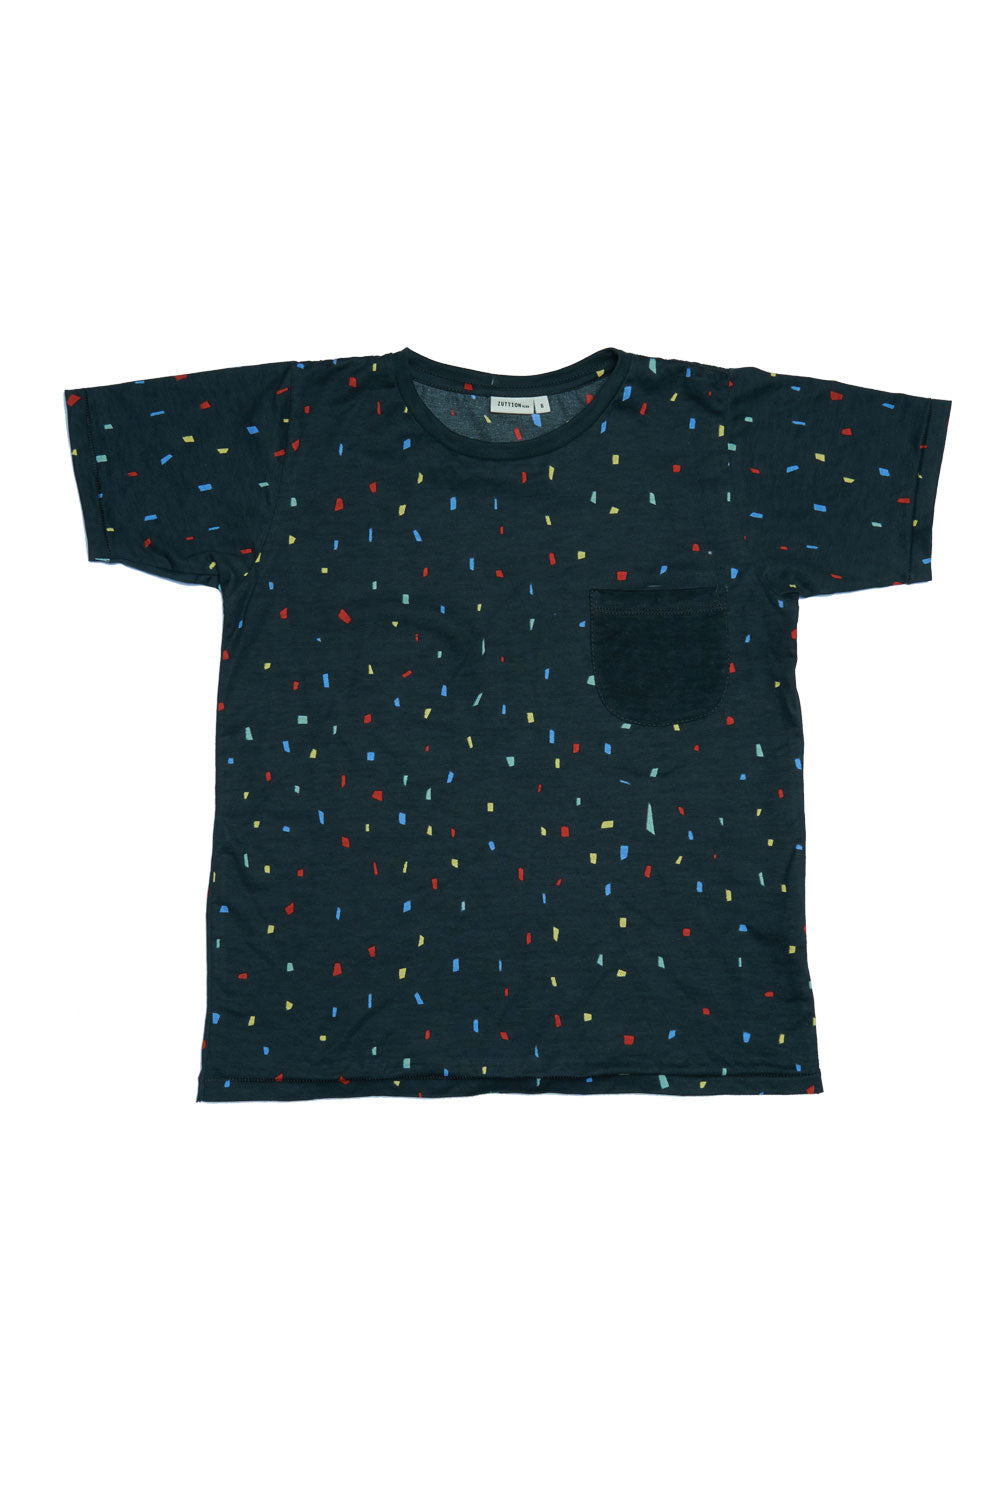 SHAPES S/S ROUND NECK T CHARCOAL